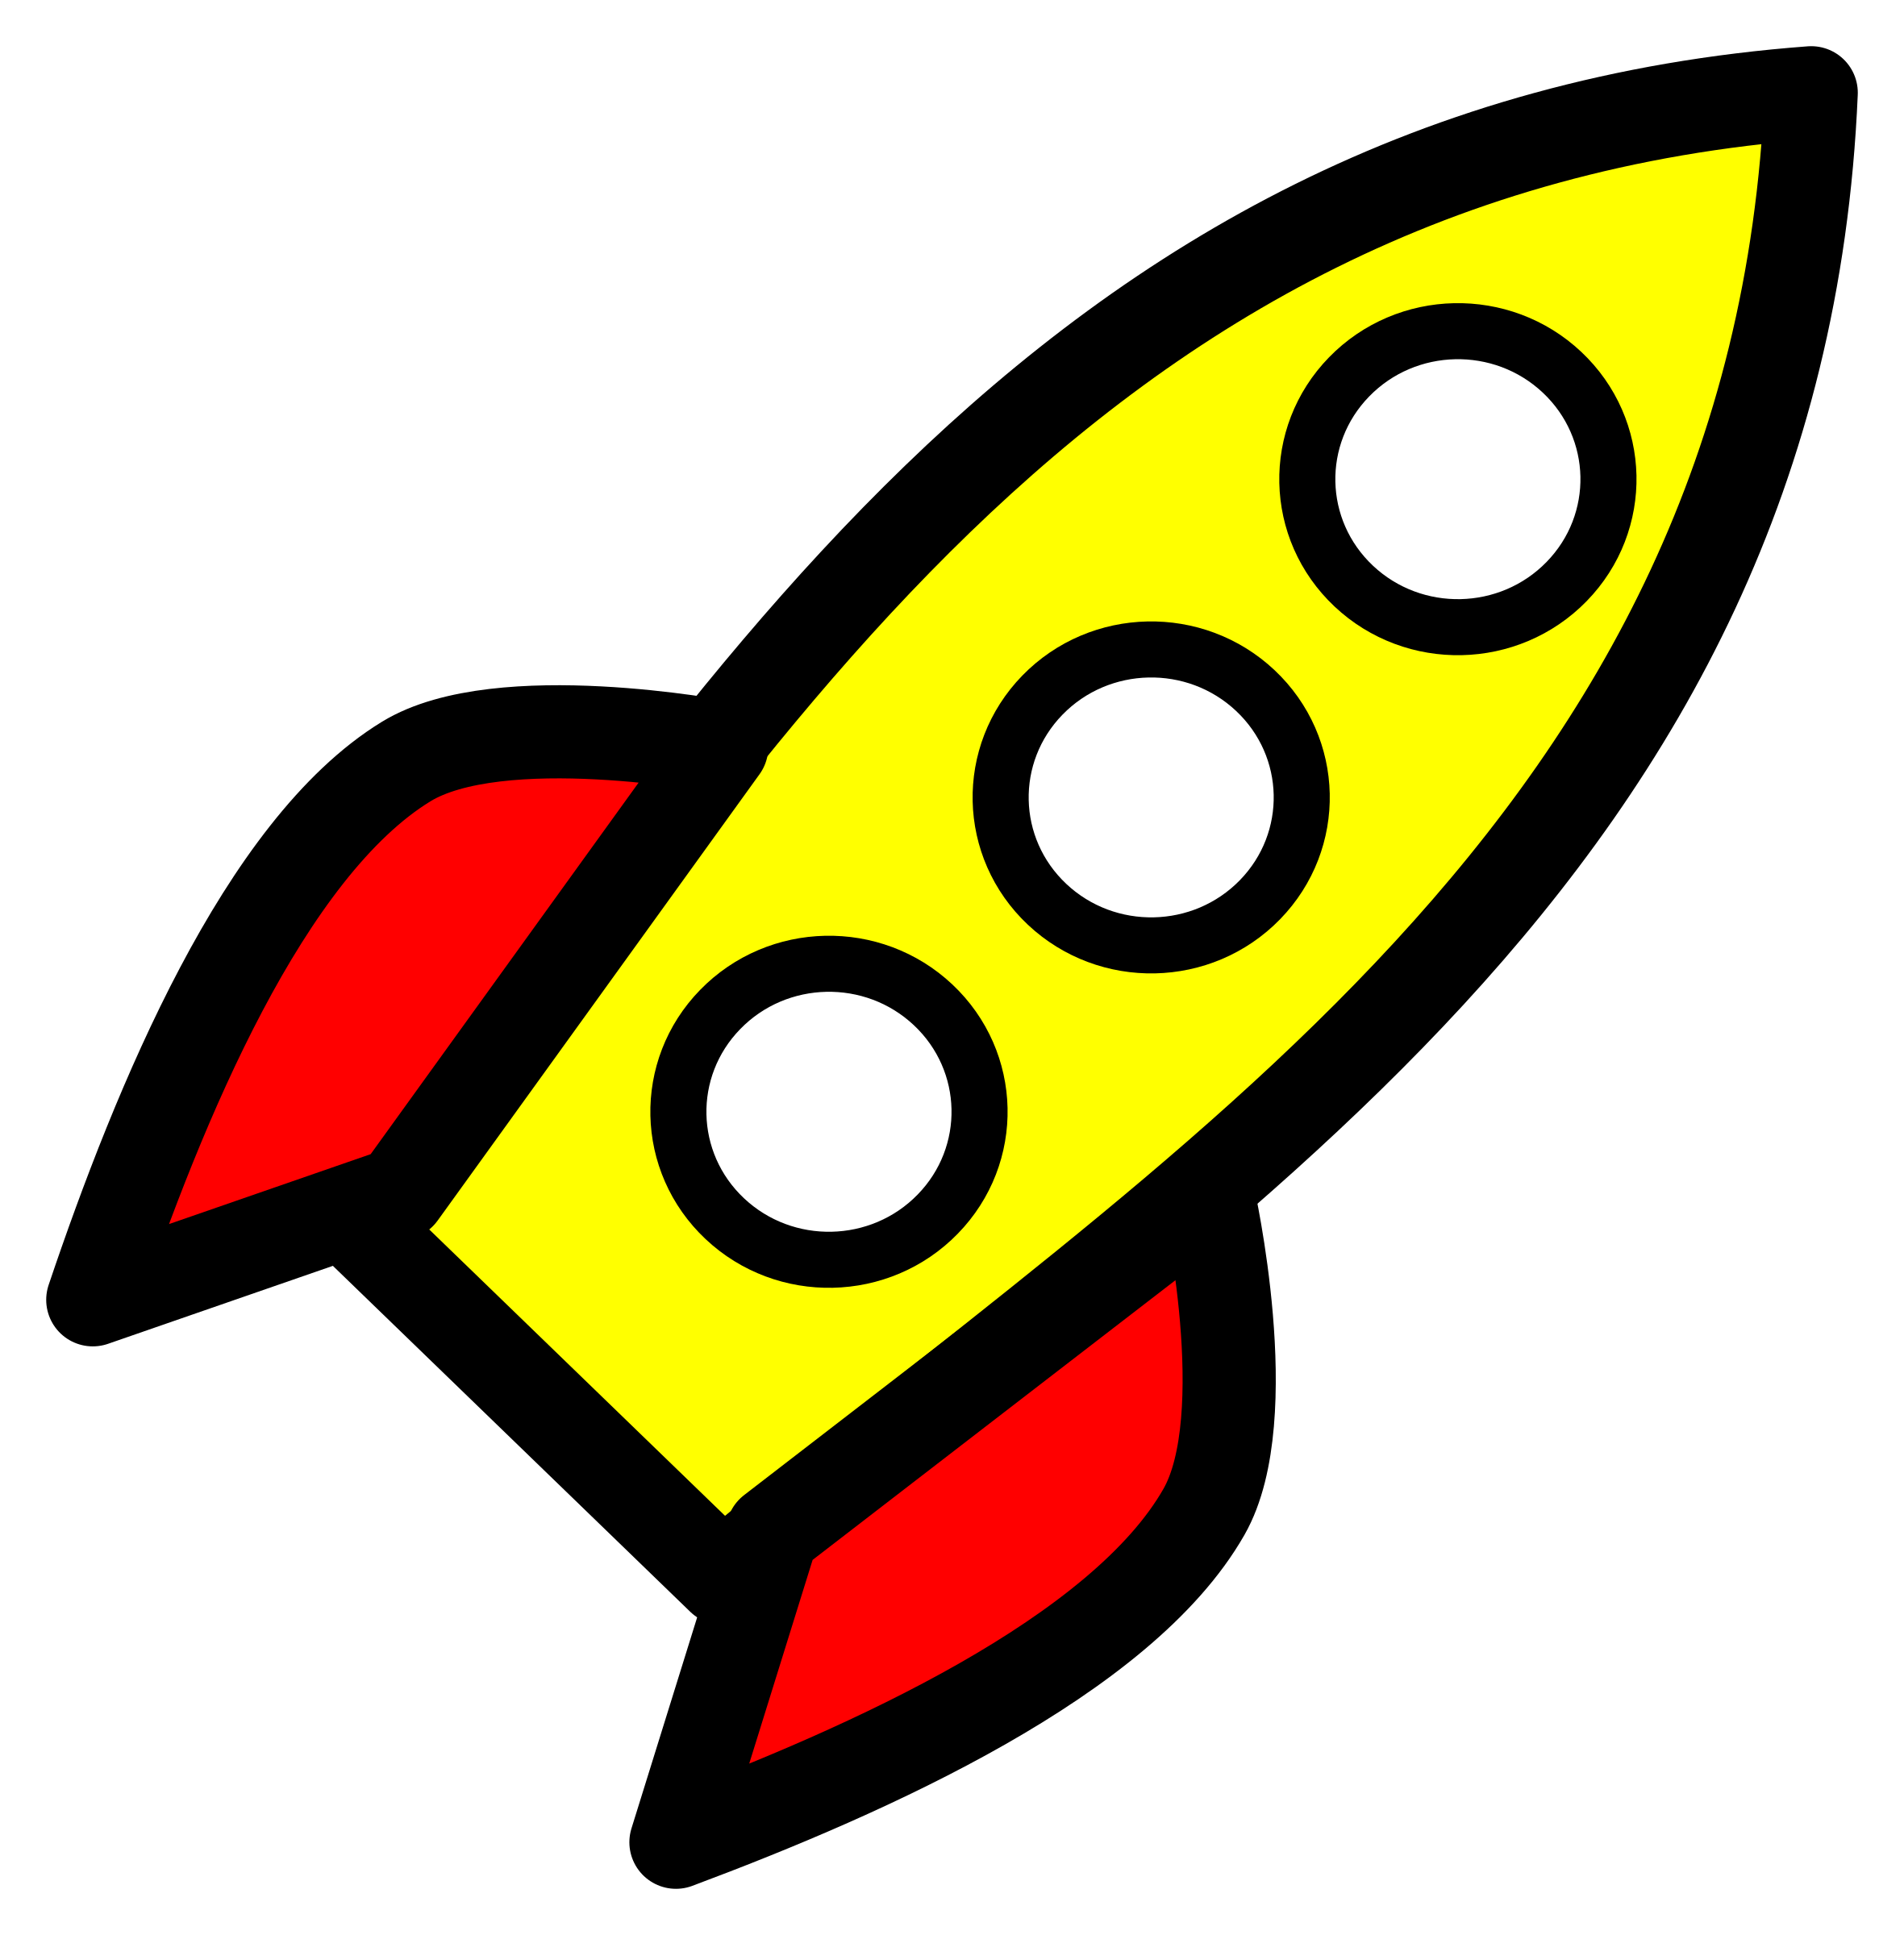 Clipart rocket royalty free. Three window icons png